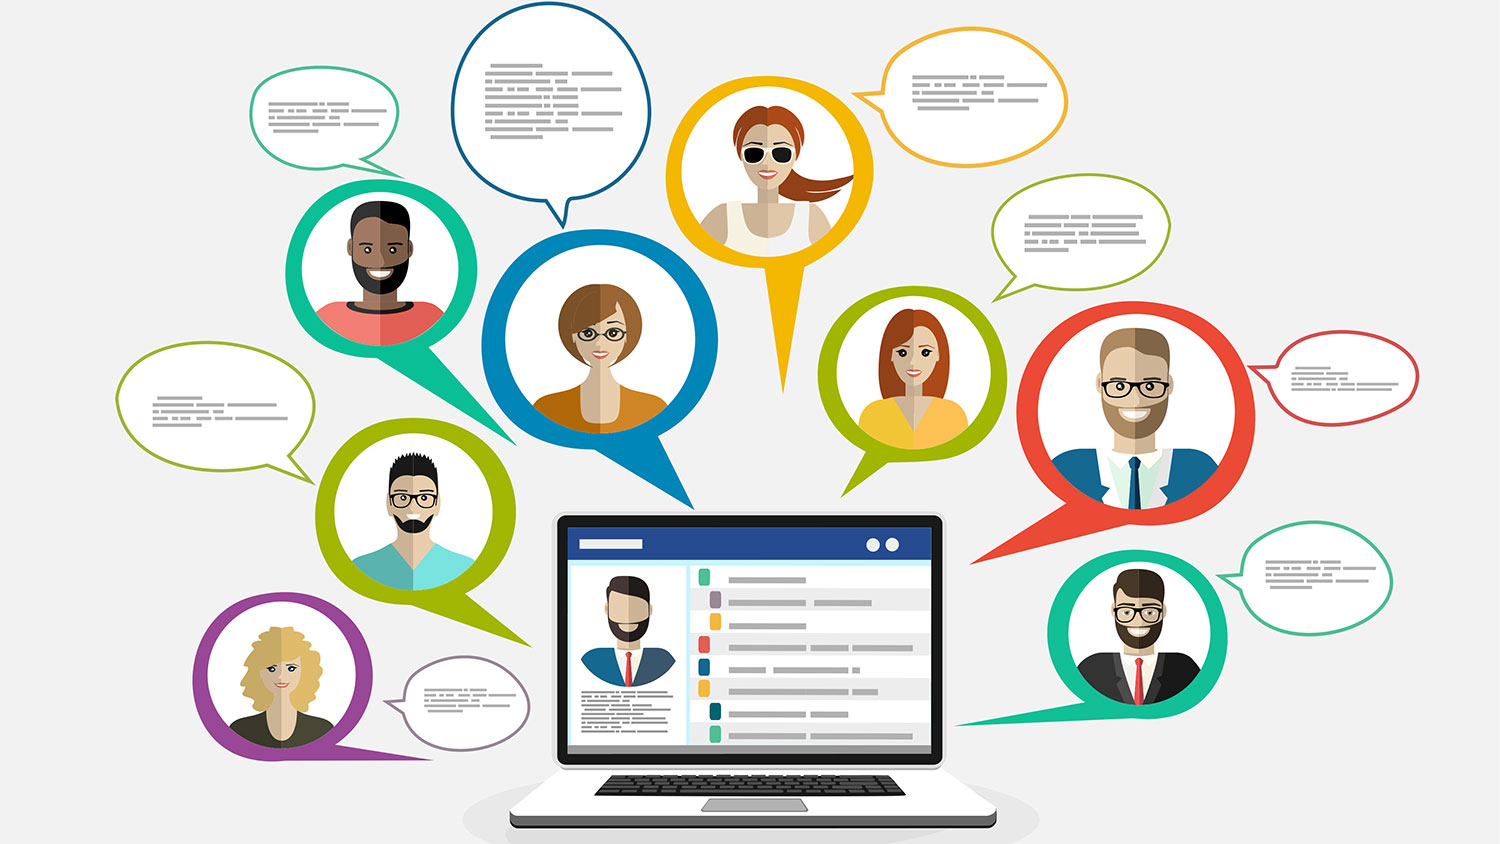 7 Tips For Running A Successful Online Community